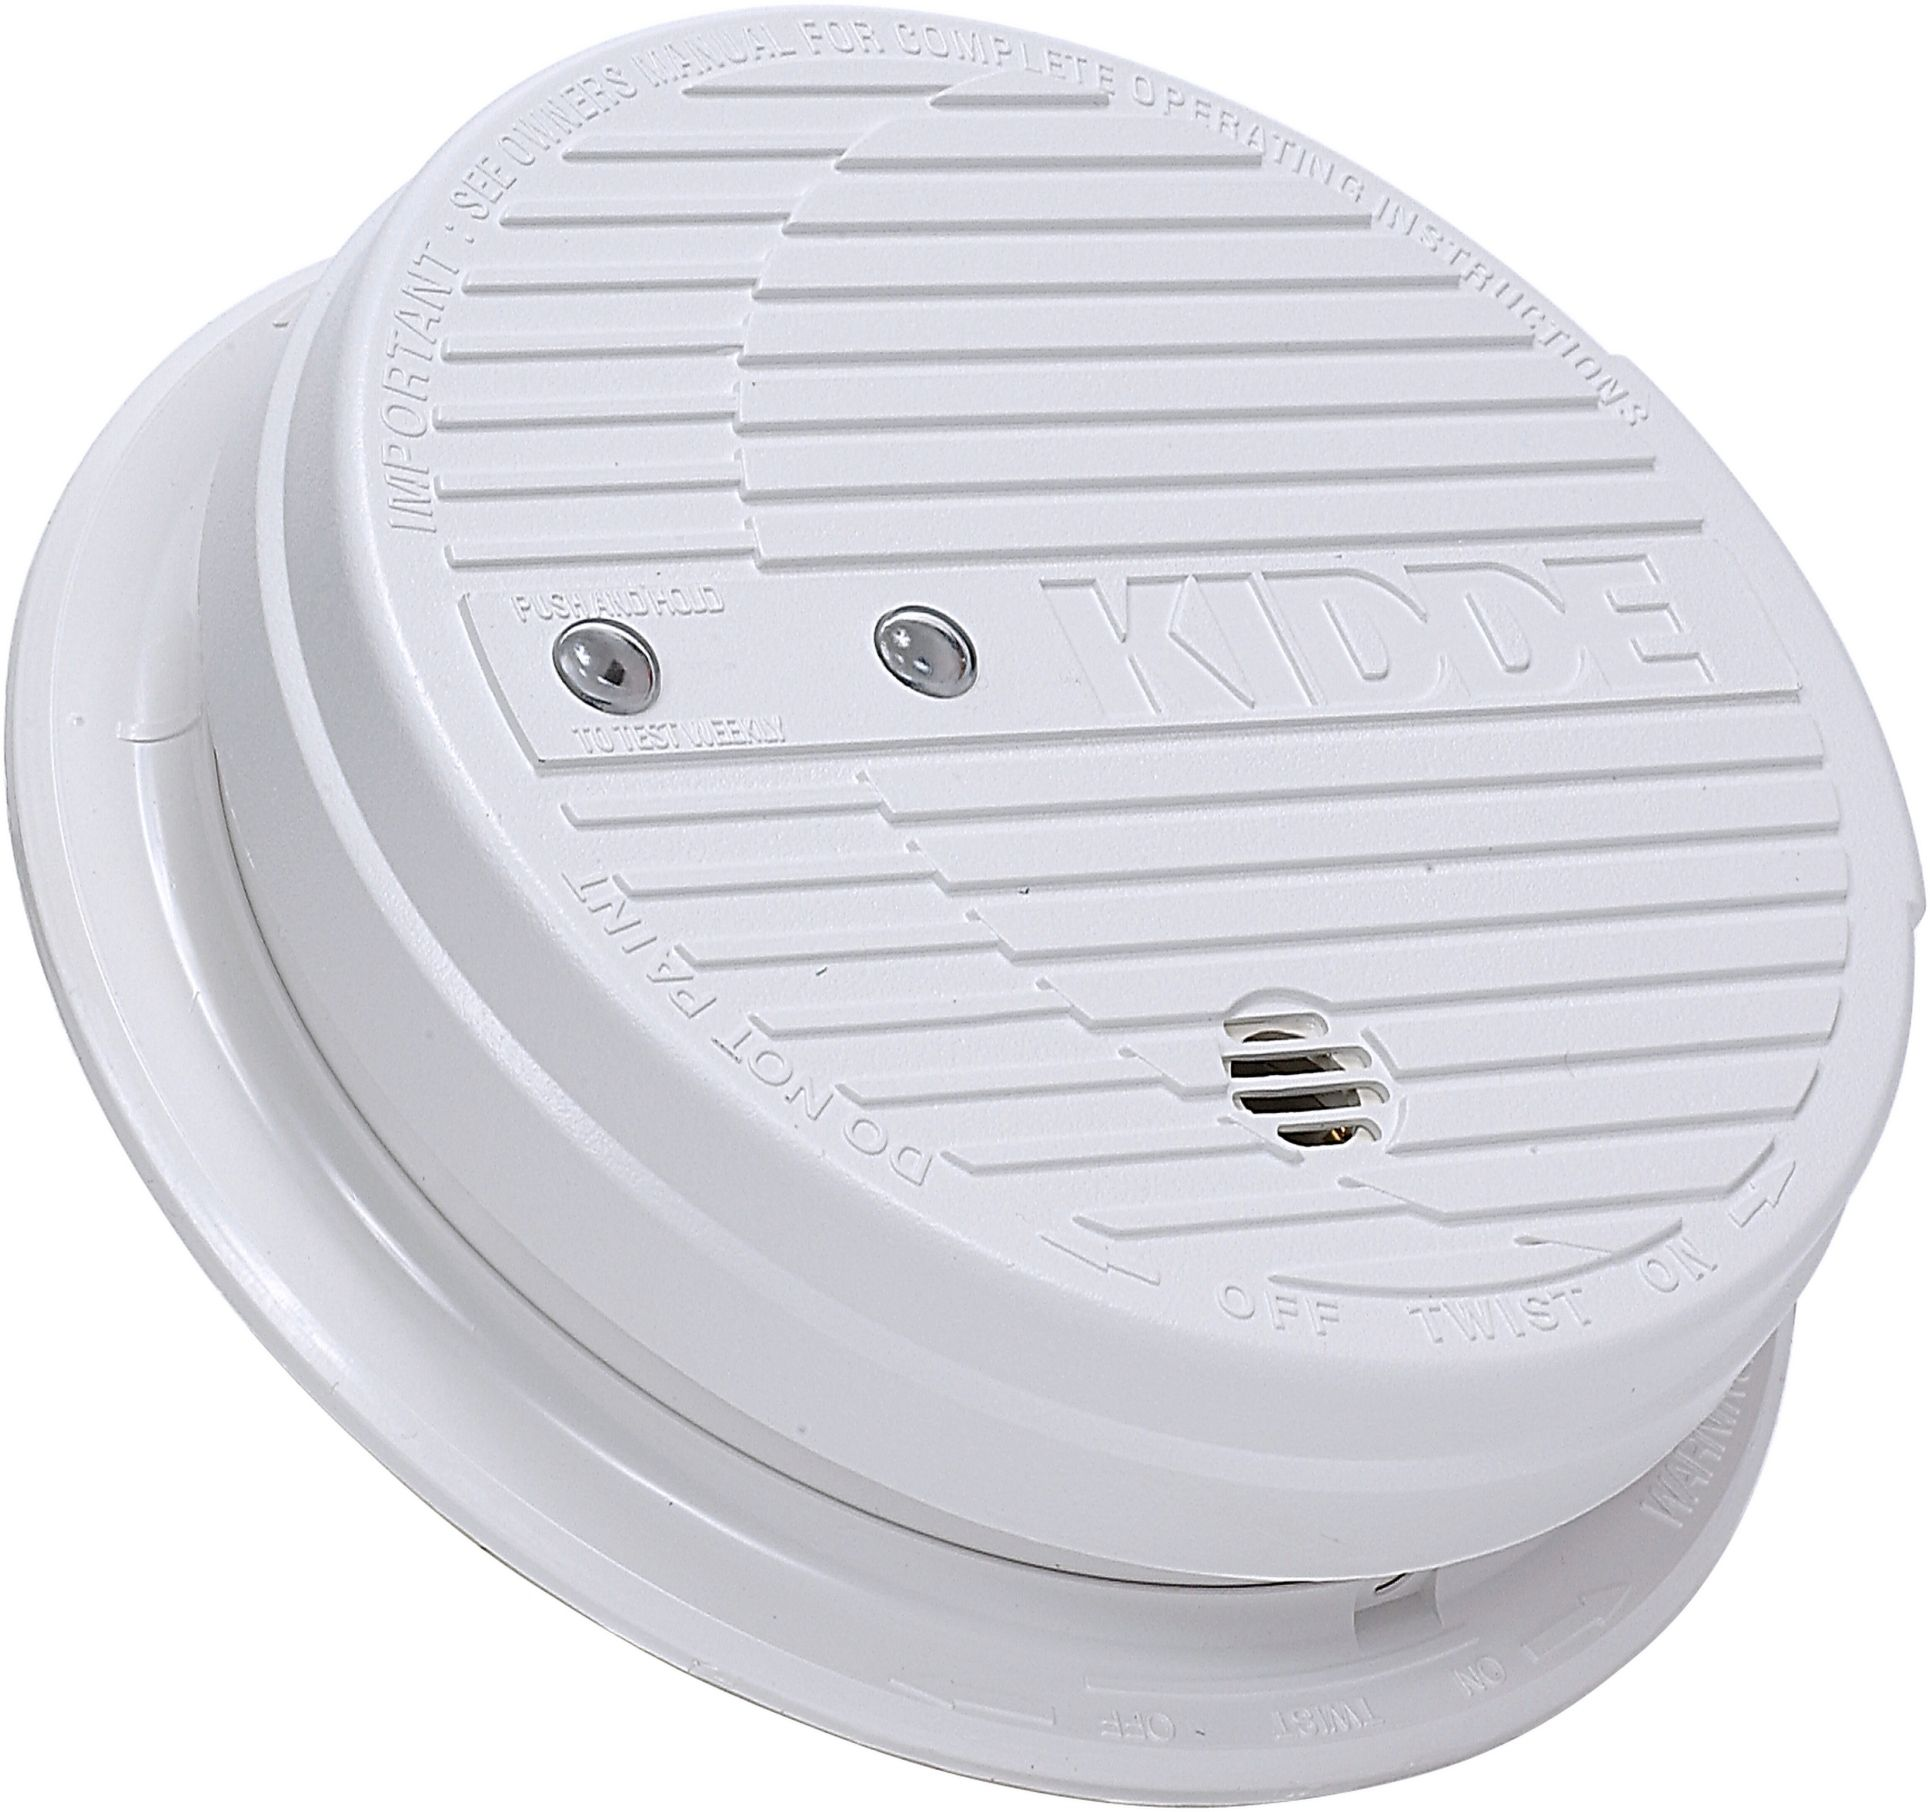 How To Reset Smoke Detectors Smoke Alarms Electric Smoke Smoke